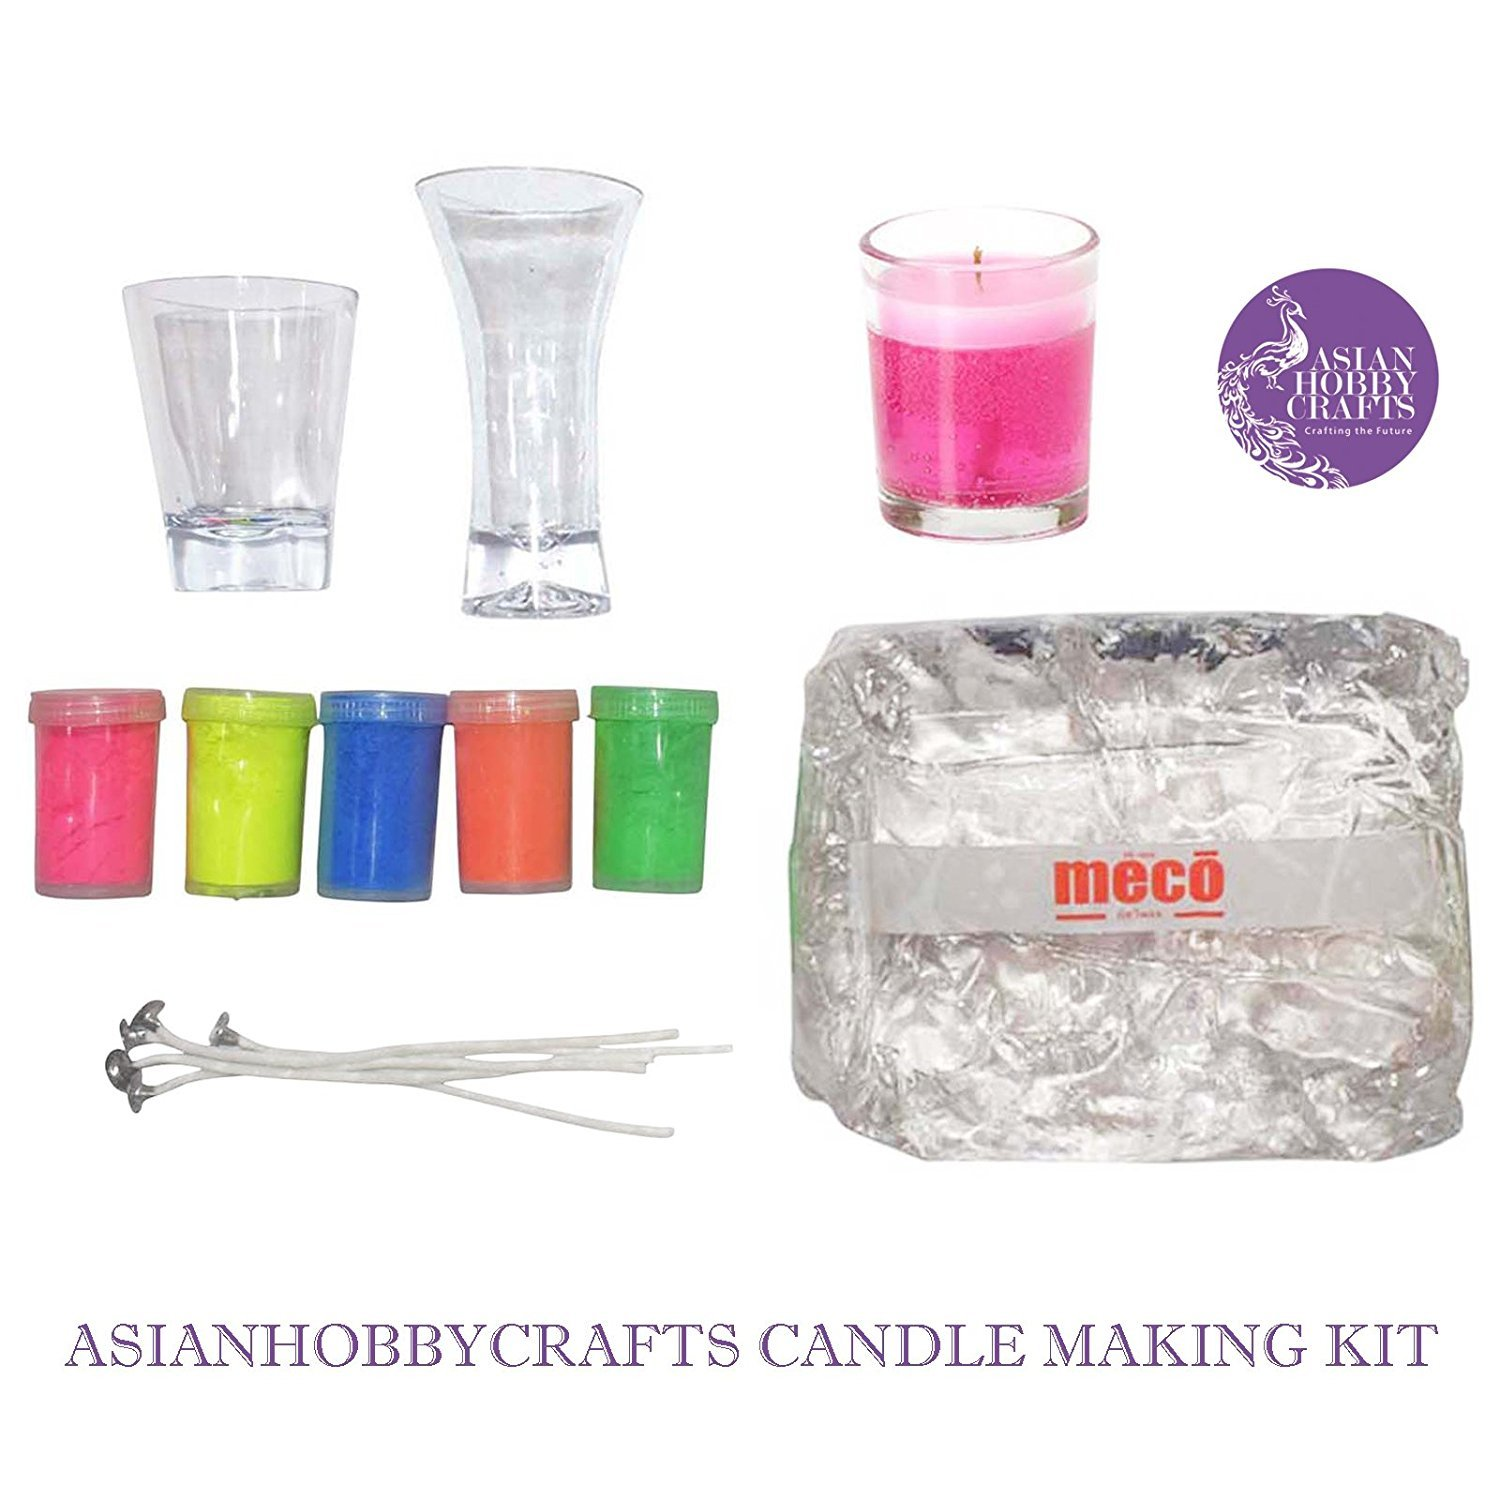 Candle Making Kit Contents: Transparent Gel Candle Wax, Wax Colors, Candle Wicks, Acrylic Candle Container